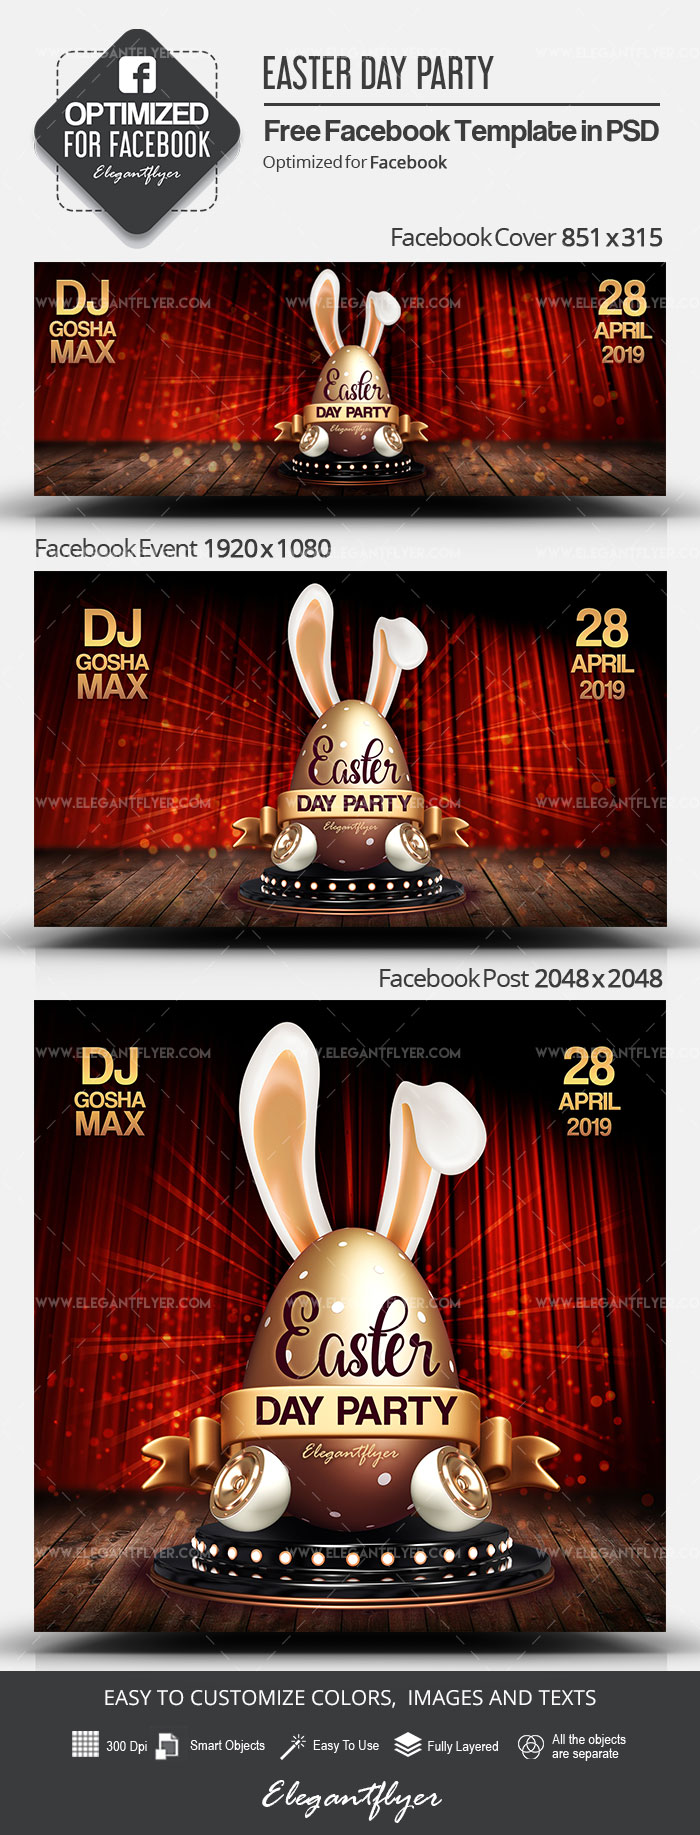 Easter Day Party – Free Facebook Cover Template in PSD + Post + Event cover